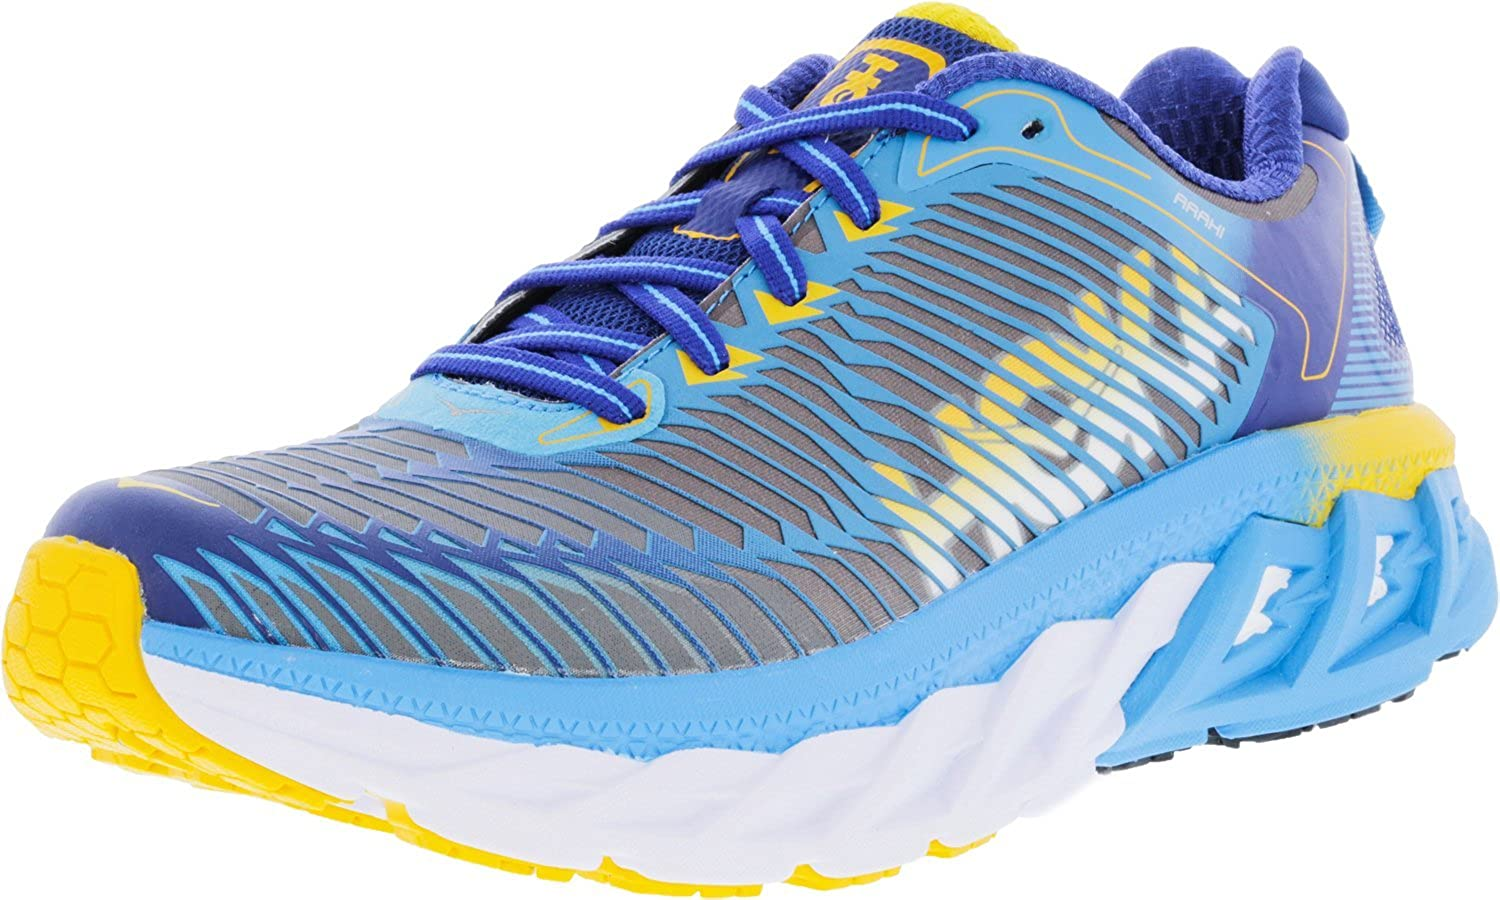 Hoka One Women's Arahi Dresden bluee gold Fusion Ankle-High Running shoes - 6M